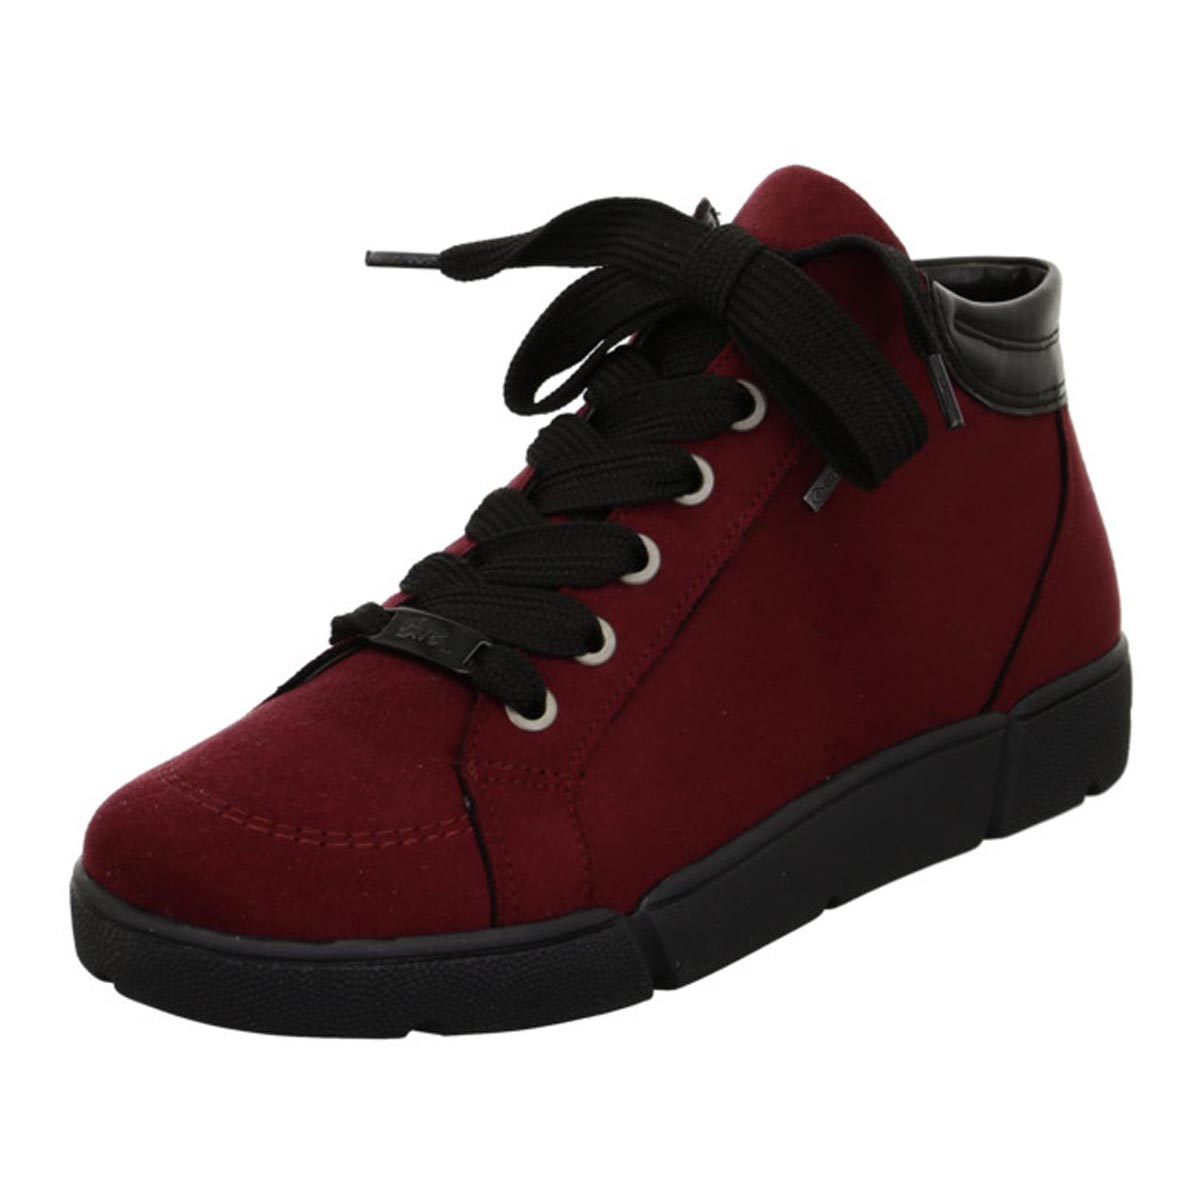 Ara - Rubina Red Rom High Top Lace Up Bootie